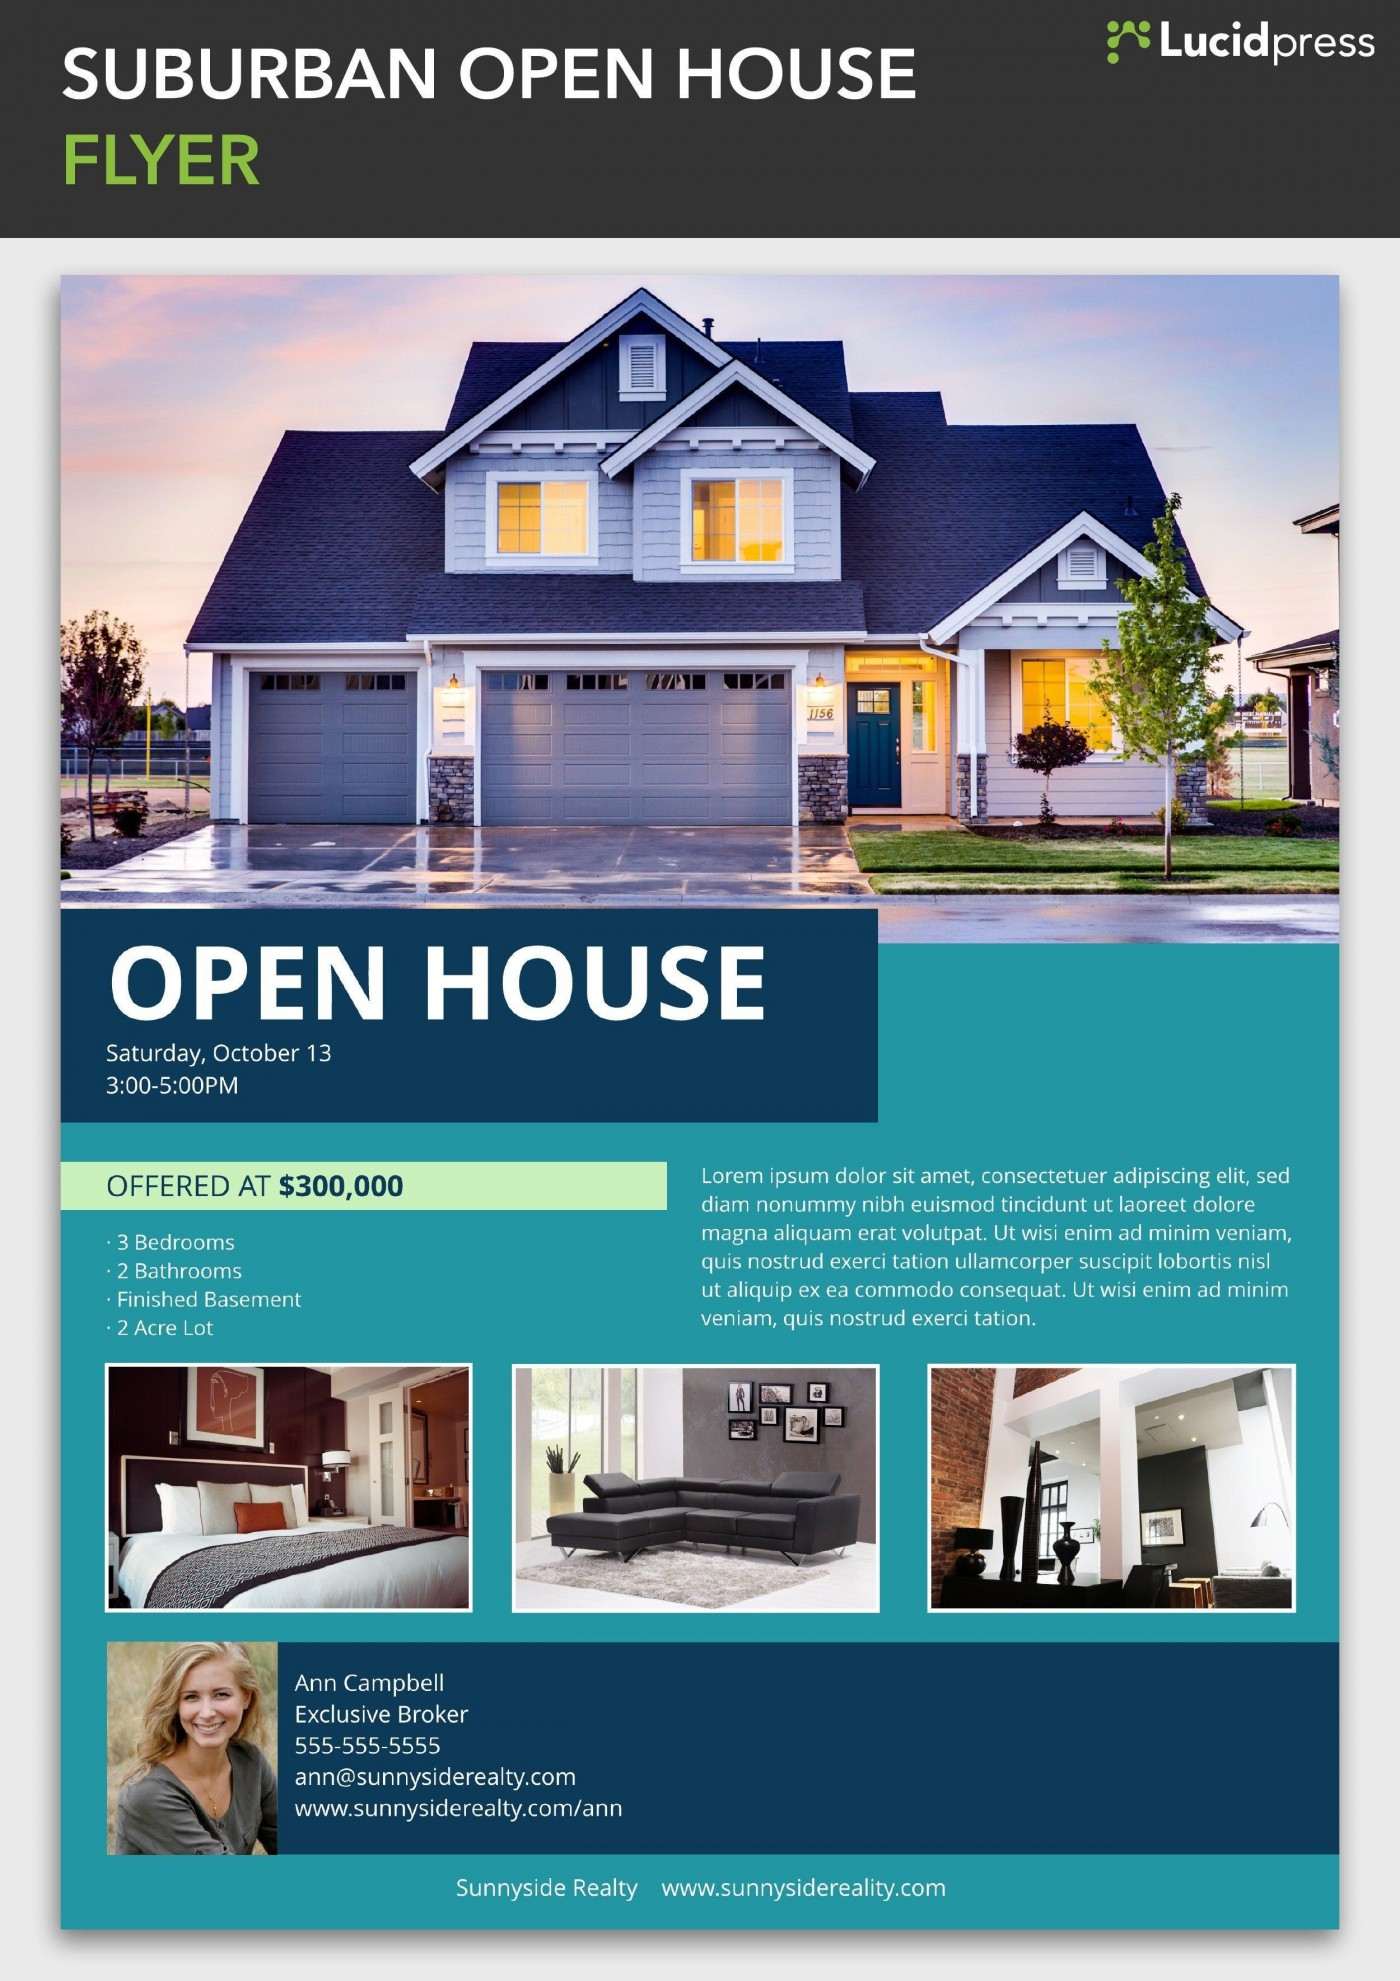 002 Magnificent Open House Flyer Template High Def  Word Free School Microsoft1400